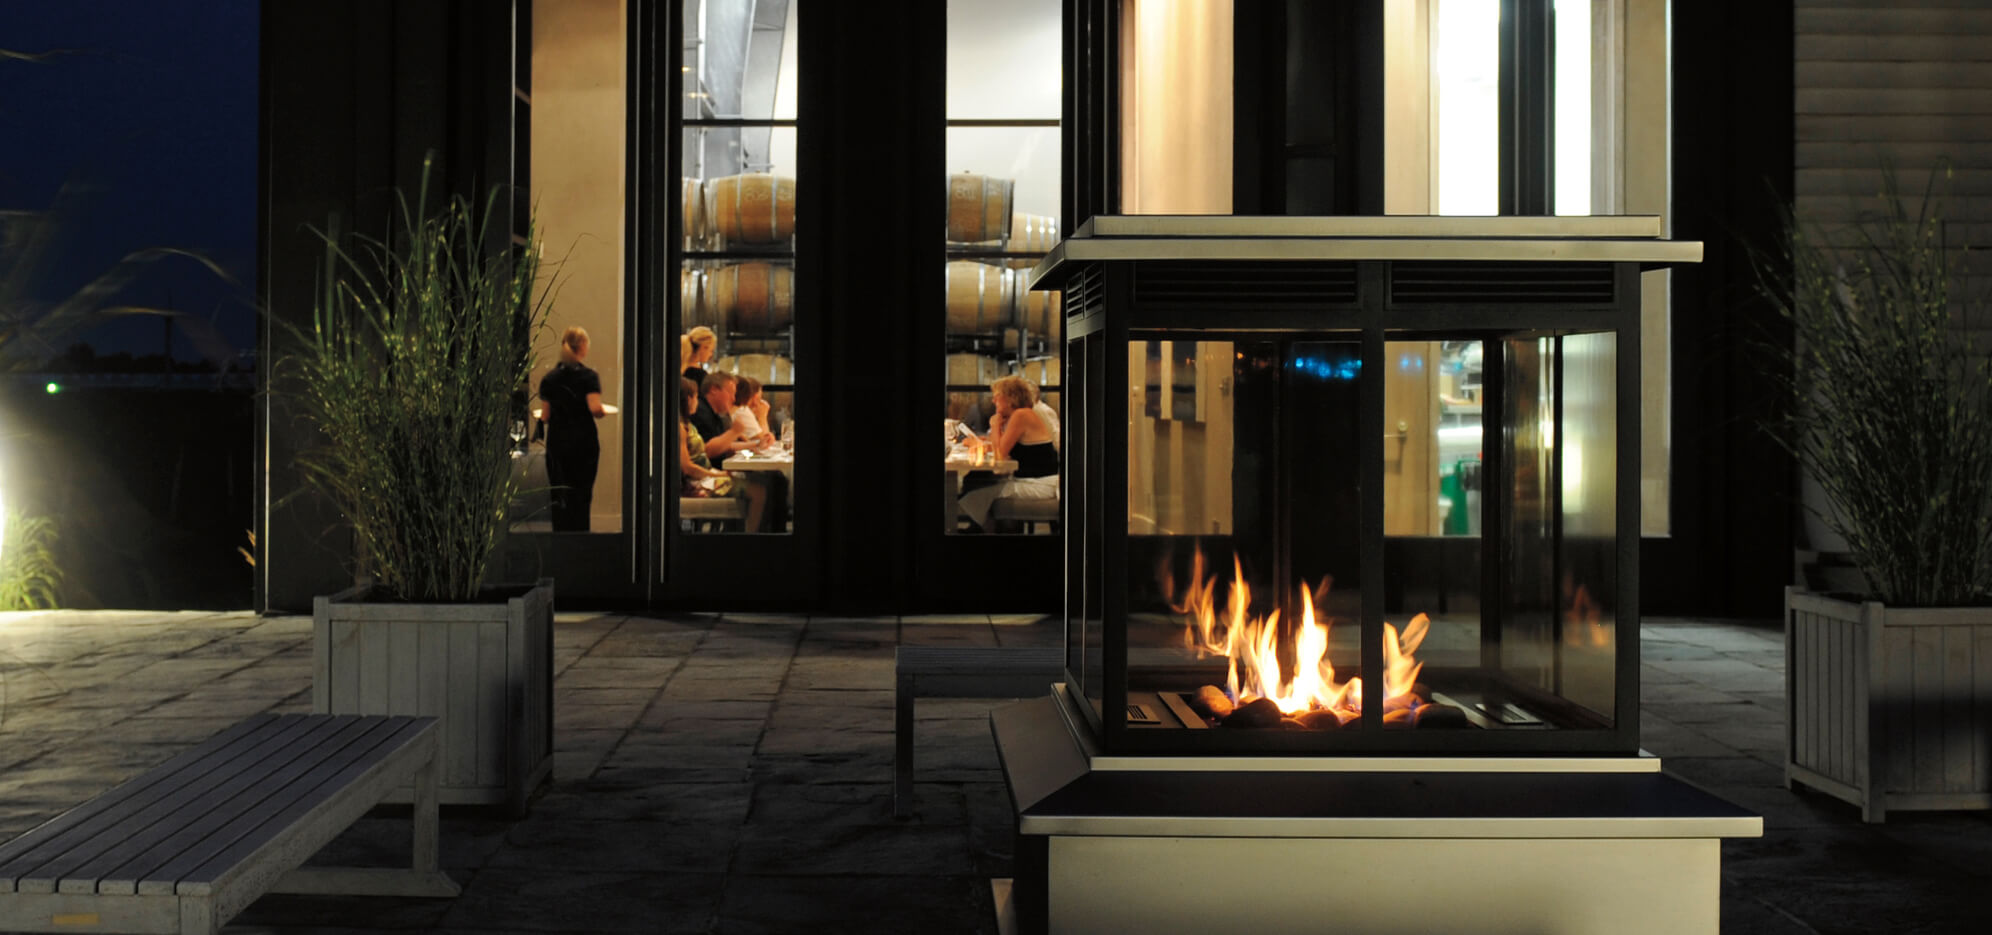 An outdoor fireplace is lit on the terrace near Stratus' wine cellar, where an event is taking place